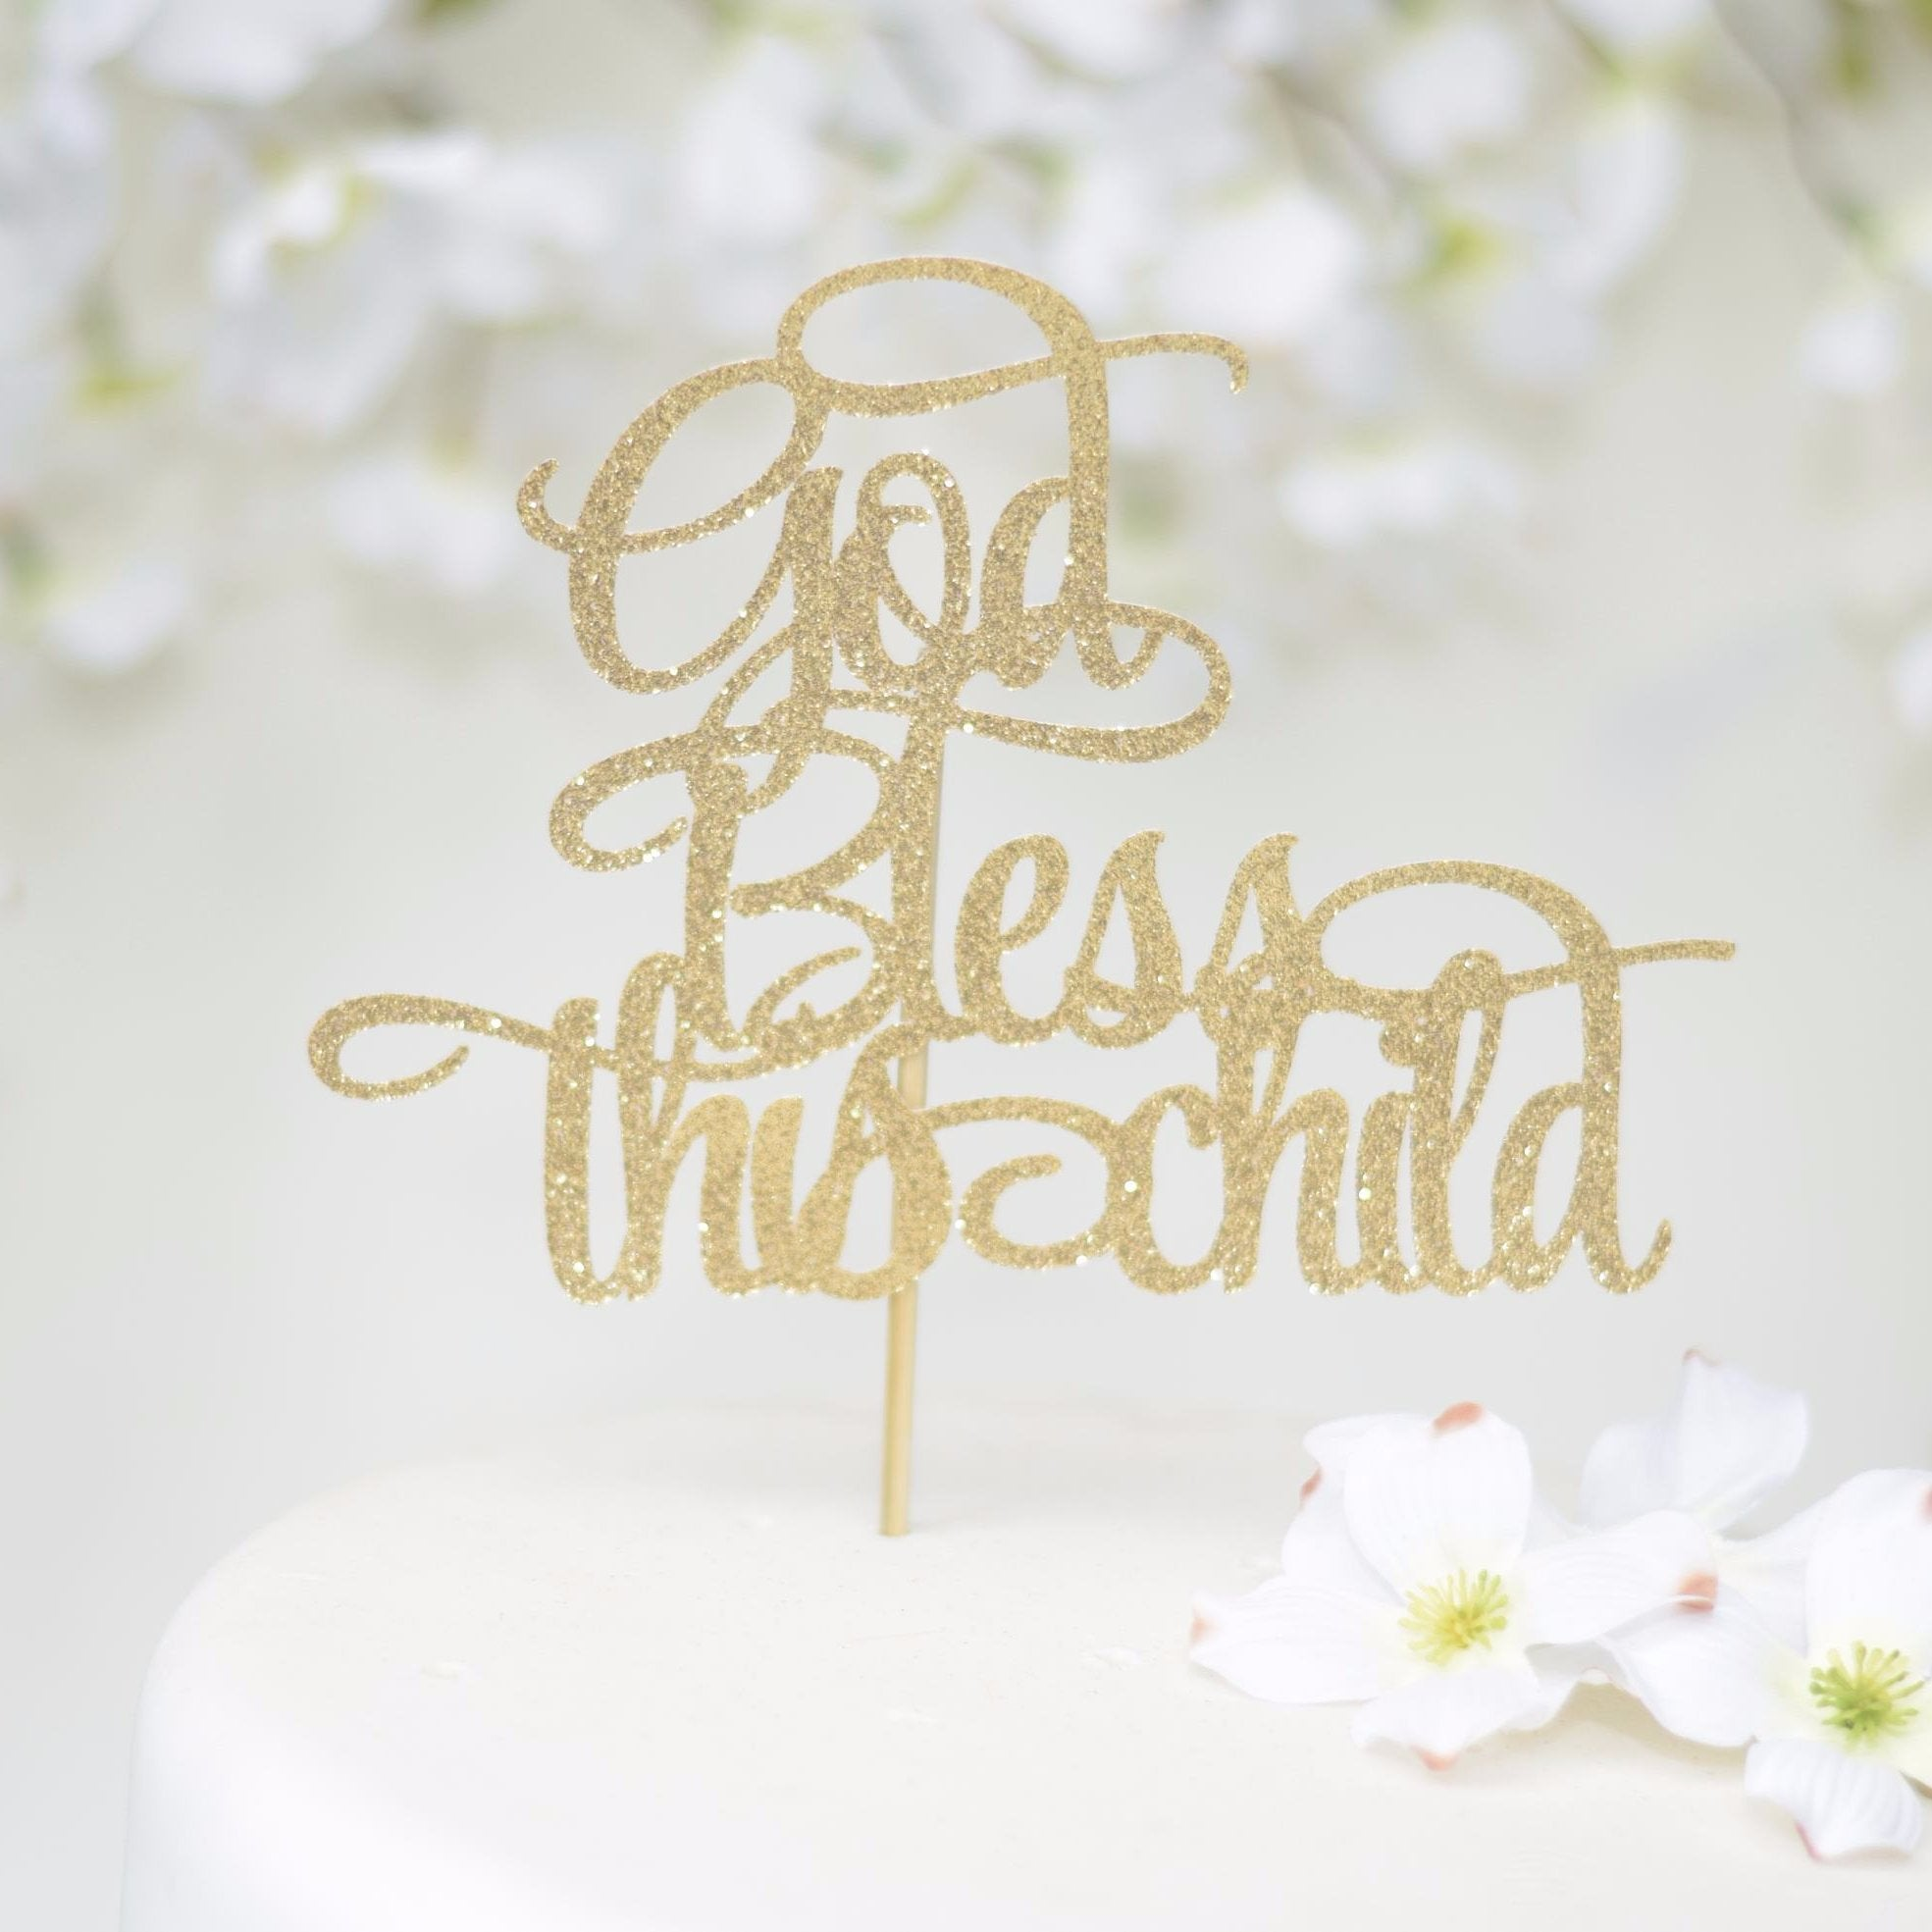 God Bless Personalized Cake Topper for Confirmation with Dove and Cross